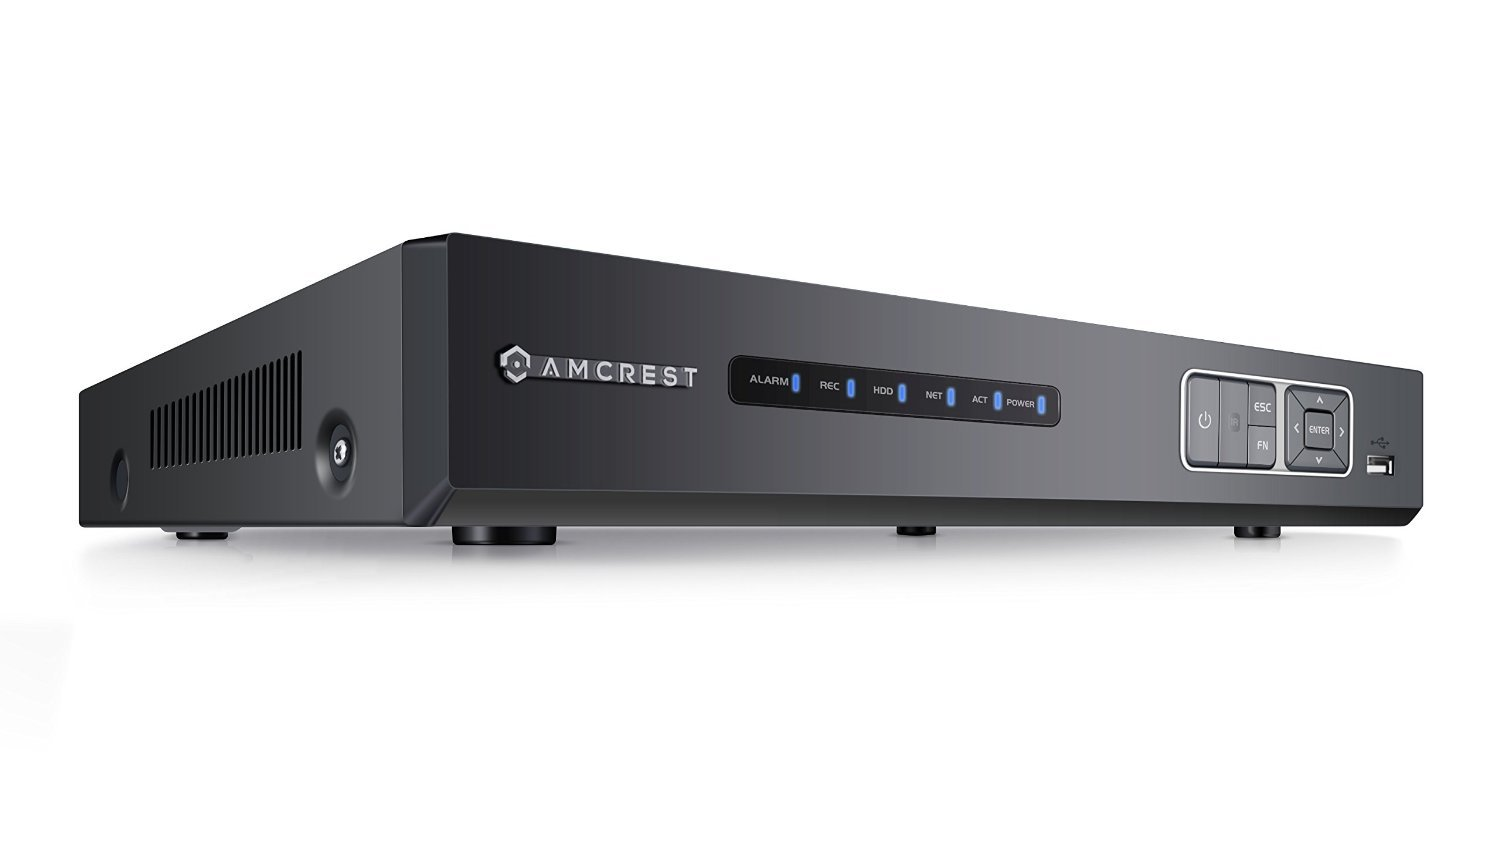 Amcrest ProHD 1080P 4CH Video Security DVR Digital Recorder, 4-Channel 1080P @ 30fps, HD Analog, Hard Drive & Cameras NOT Included, Remote Smartphone Access (AMDV10804)